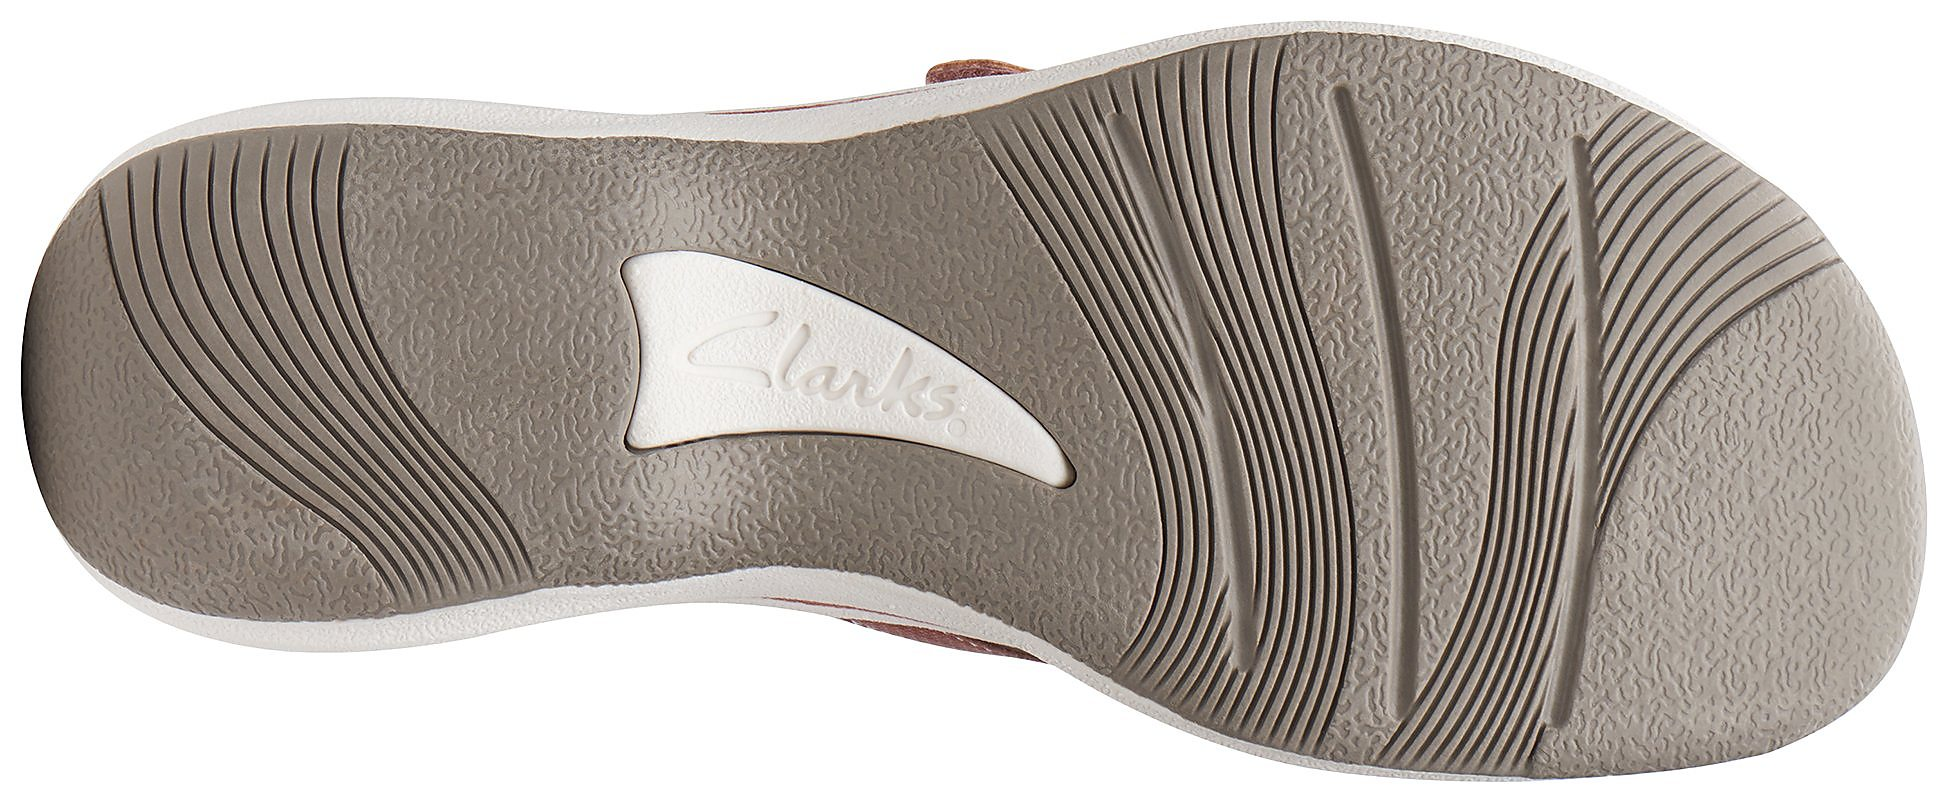 Clarks-Womens-Breeze-Sea-Flip-Flops-Comfort-Summer-Sandals thumbnail 25